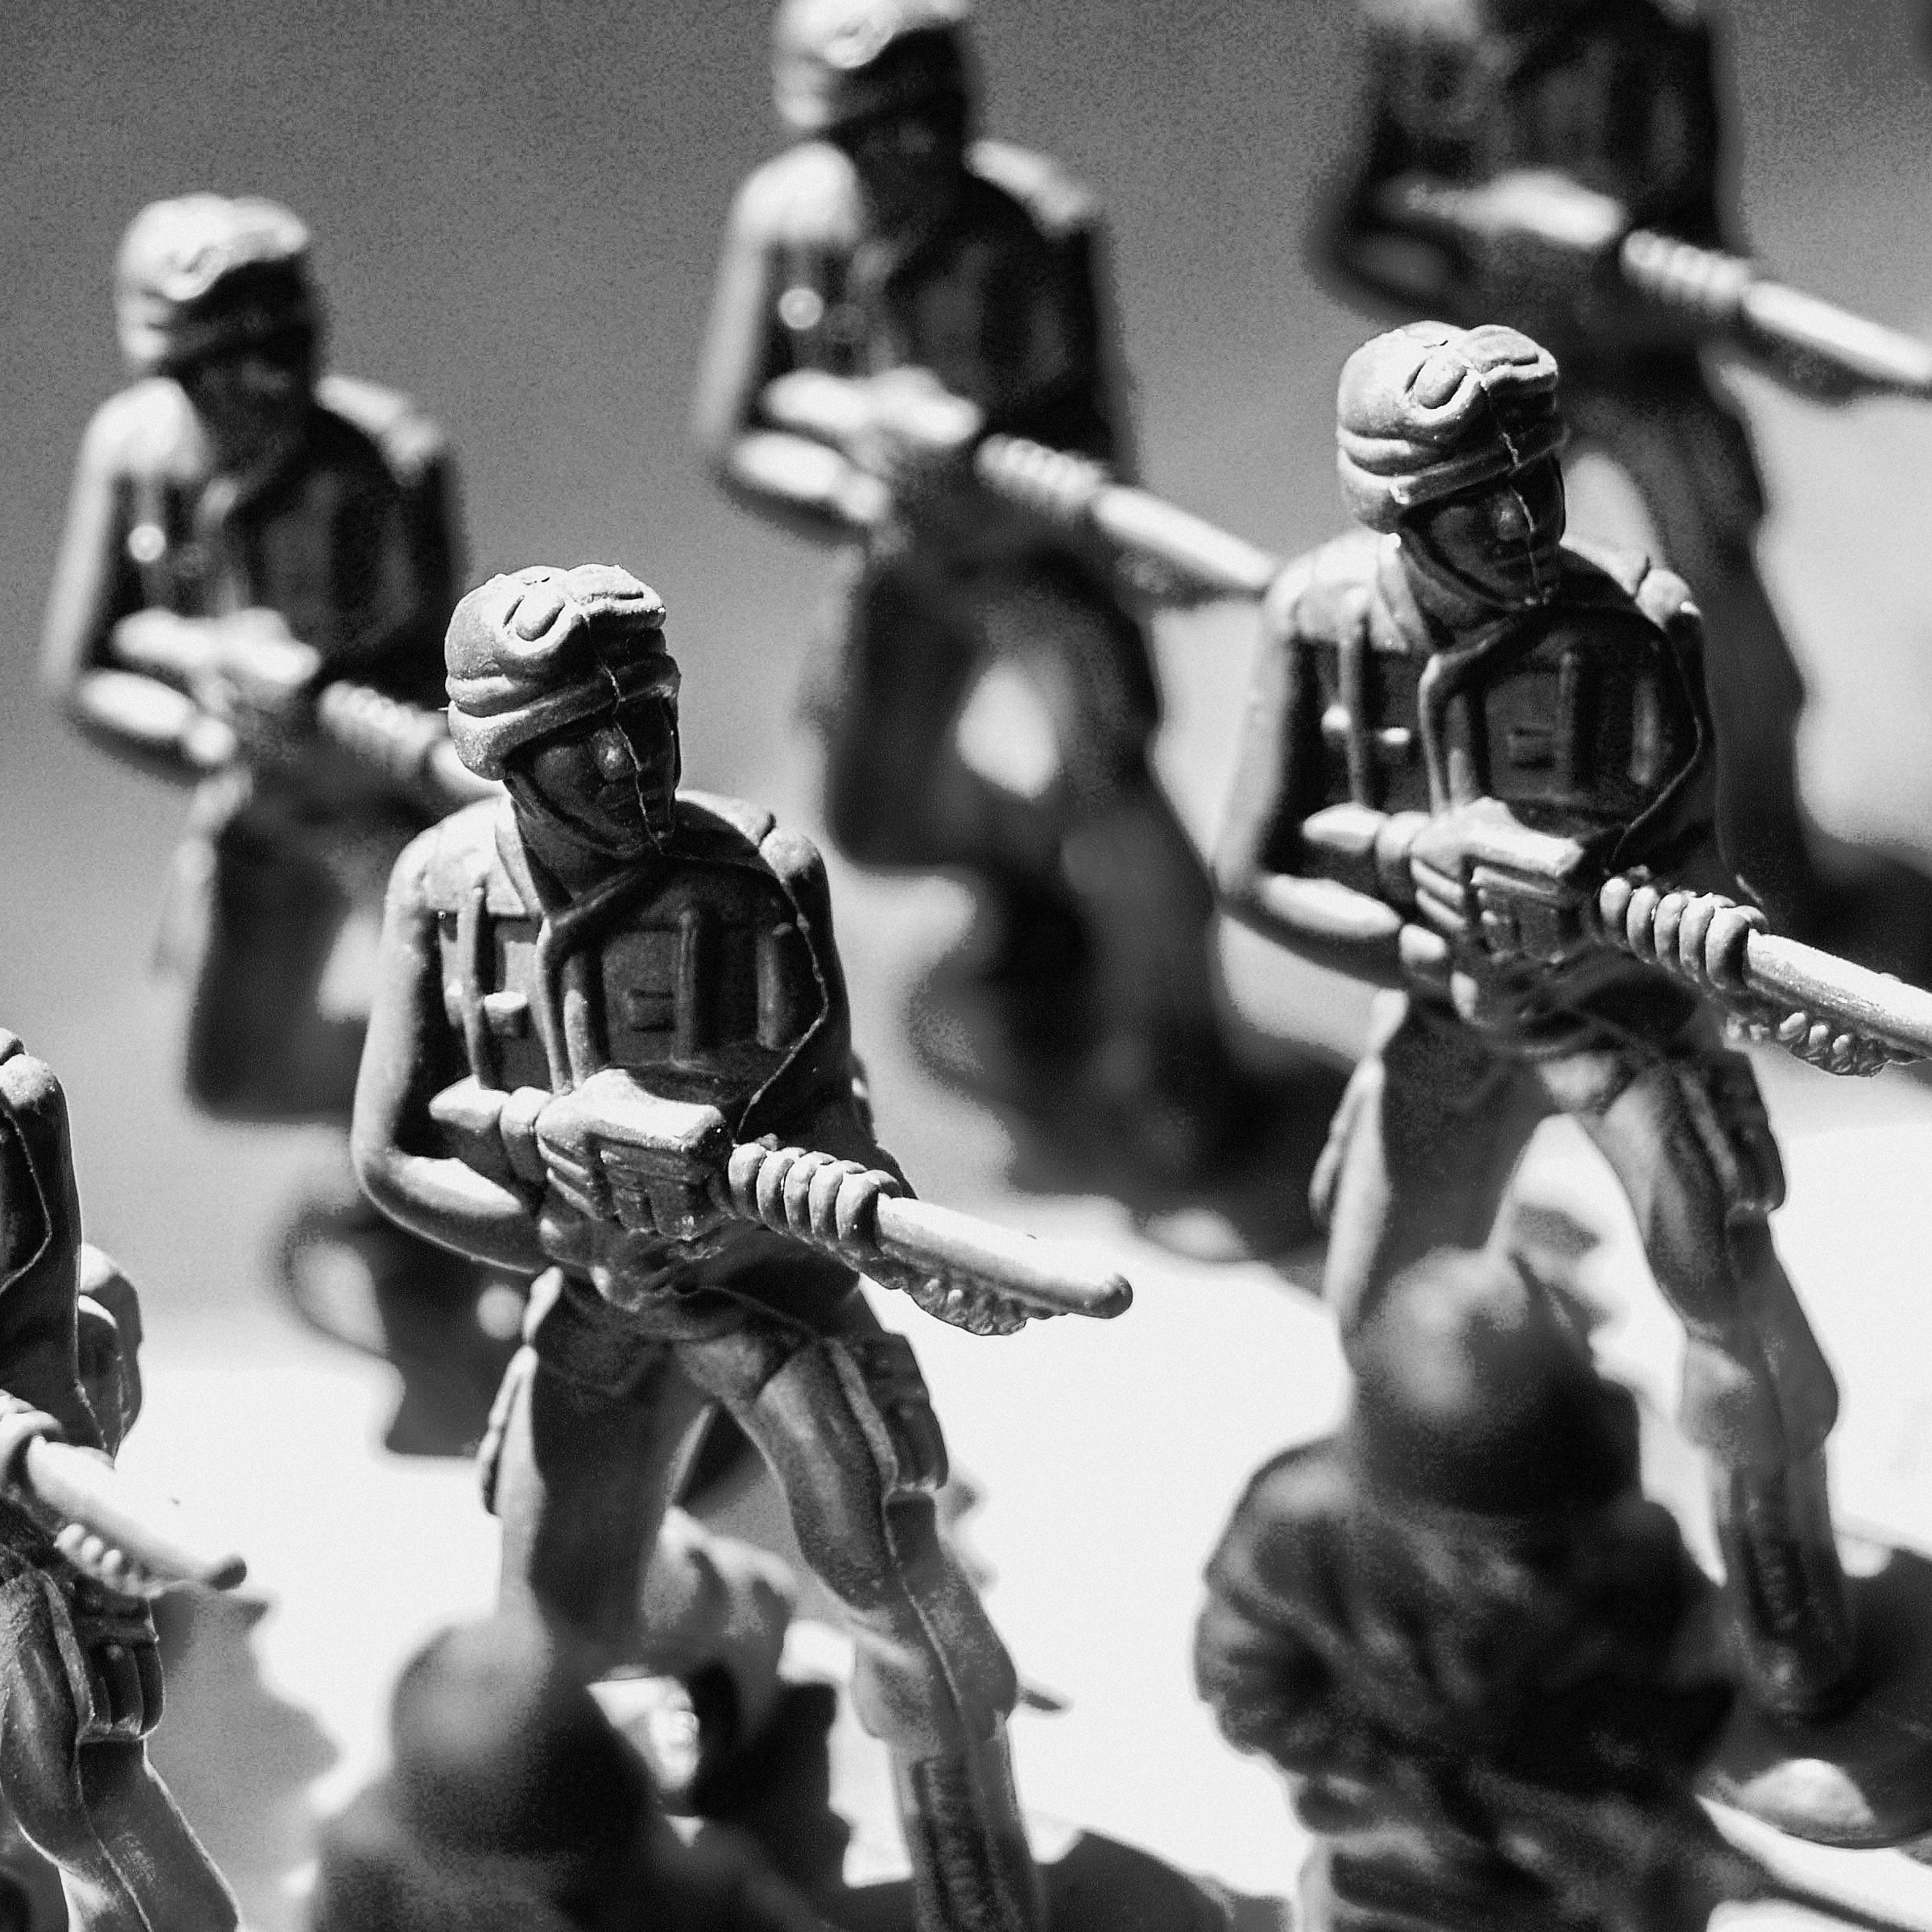 army-attack-figurines-1214270.jpg